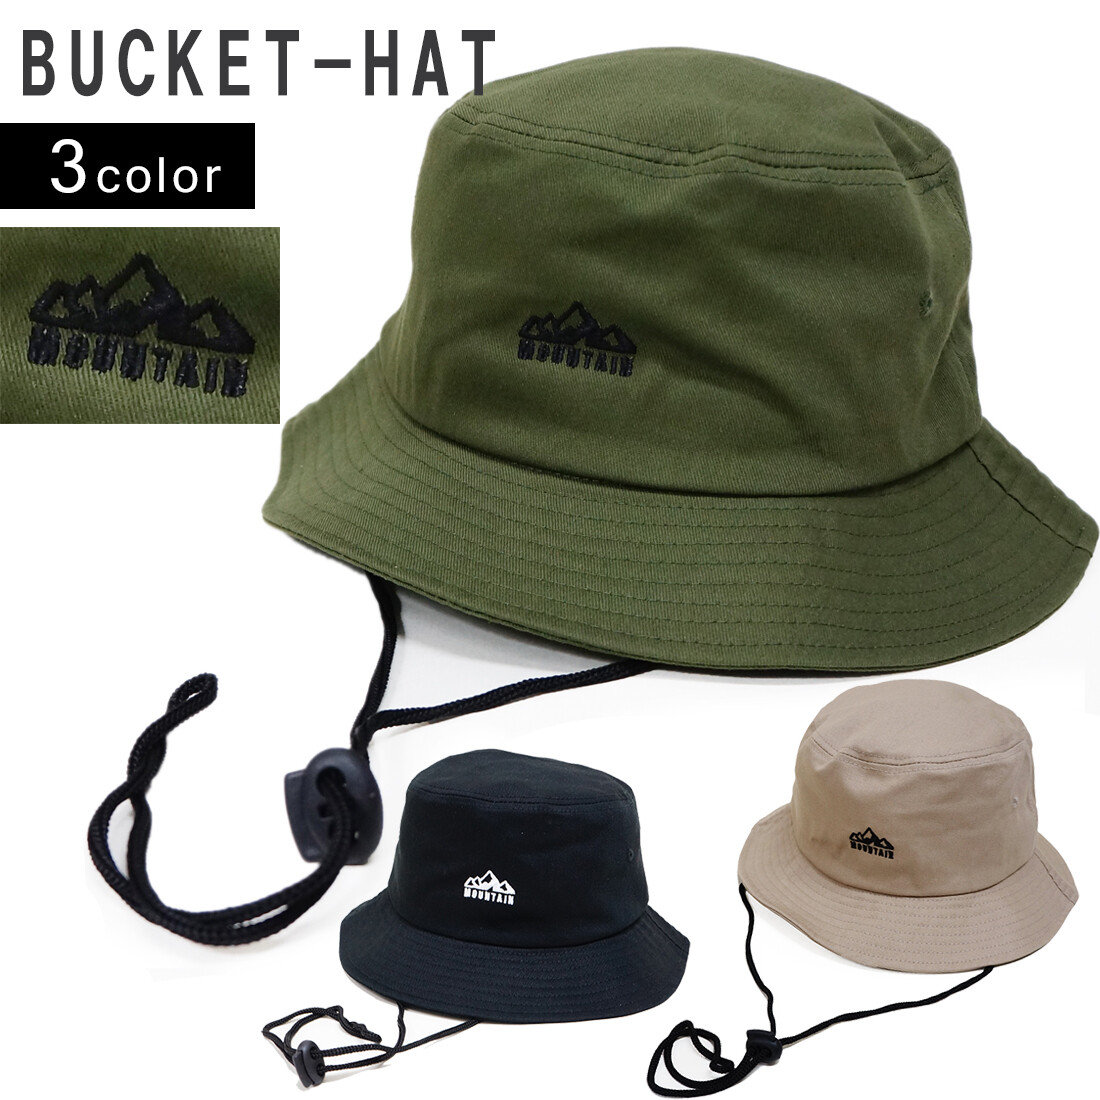 Hats Cap Hat Men S Ladies Hat Bucket Hat Safari Hat Outdoor Good Embroidery Mountain Key Import Japanese Products At Wholesale Prices Super Delivery